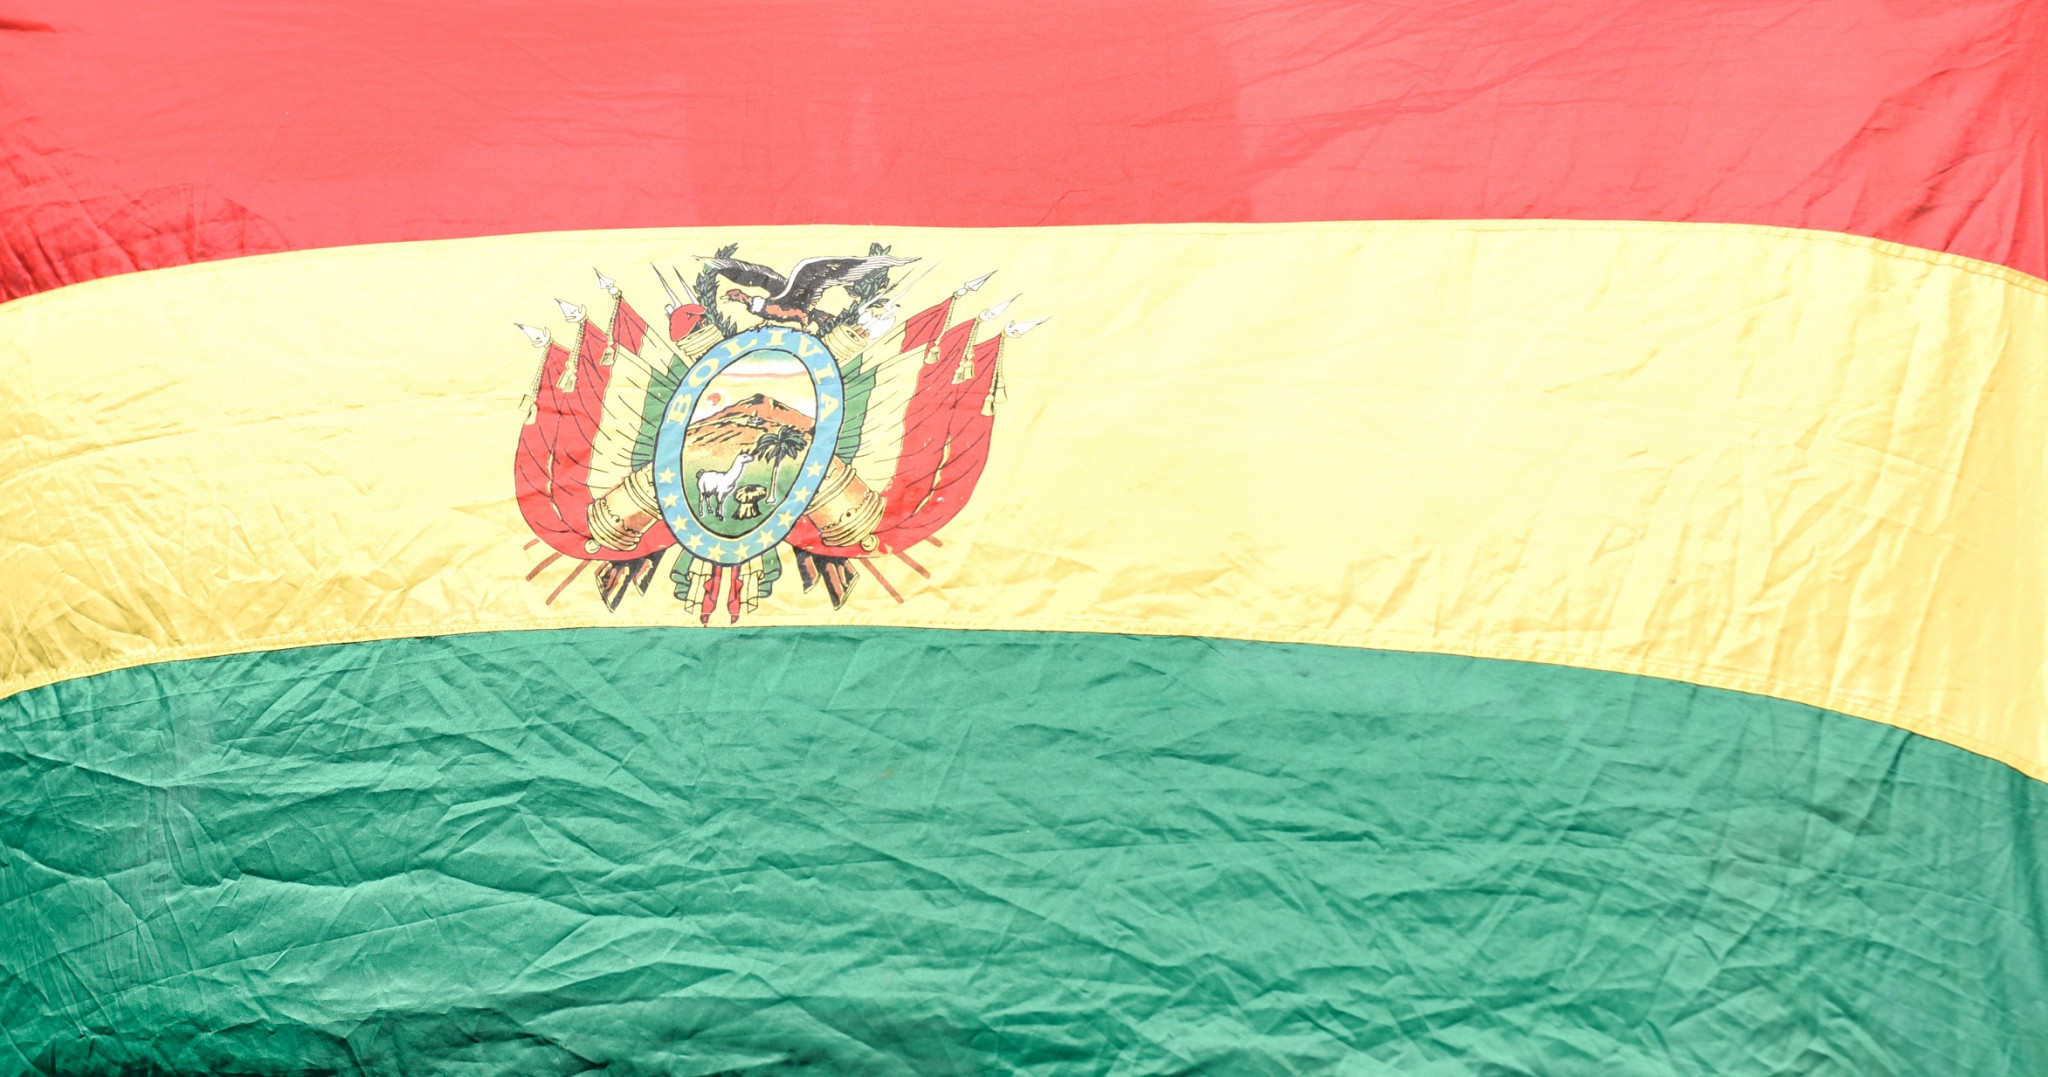 Bolivia becomes member of International Mixed Martial Arts Federation